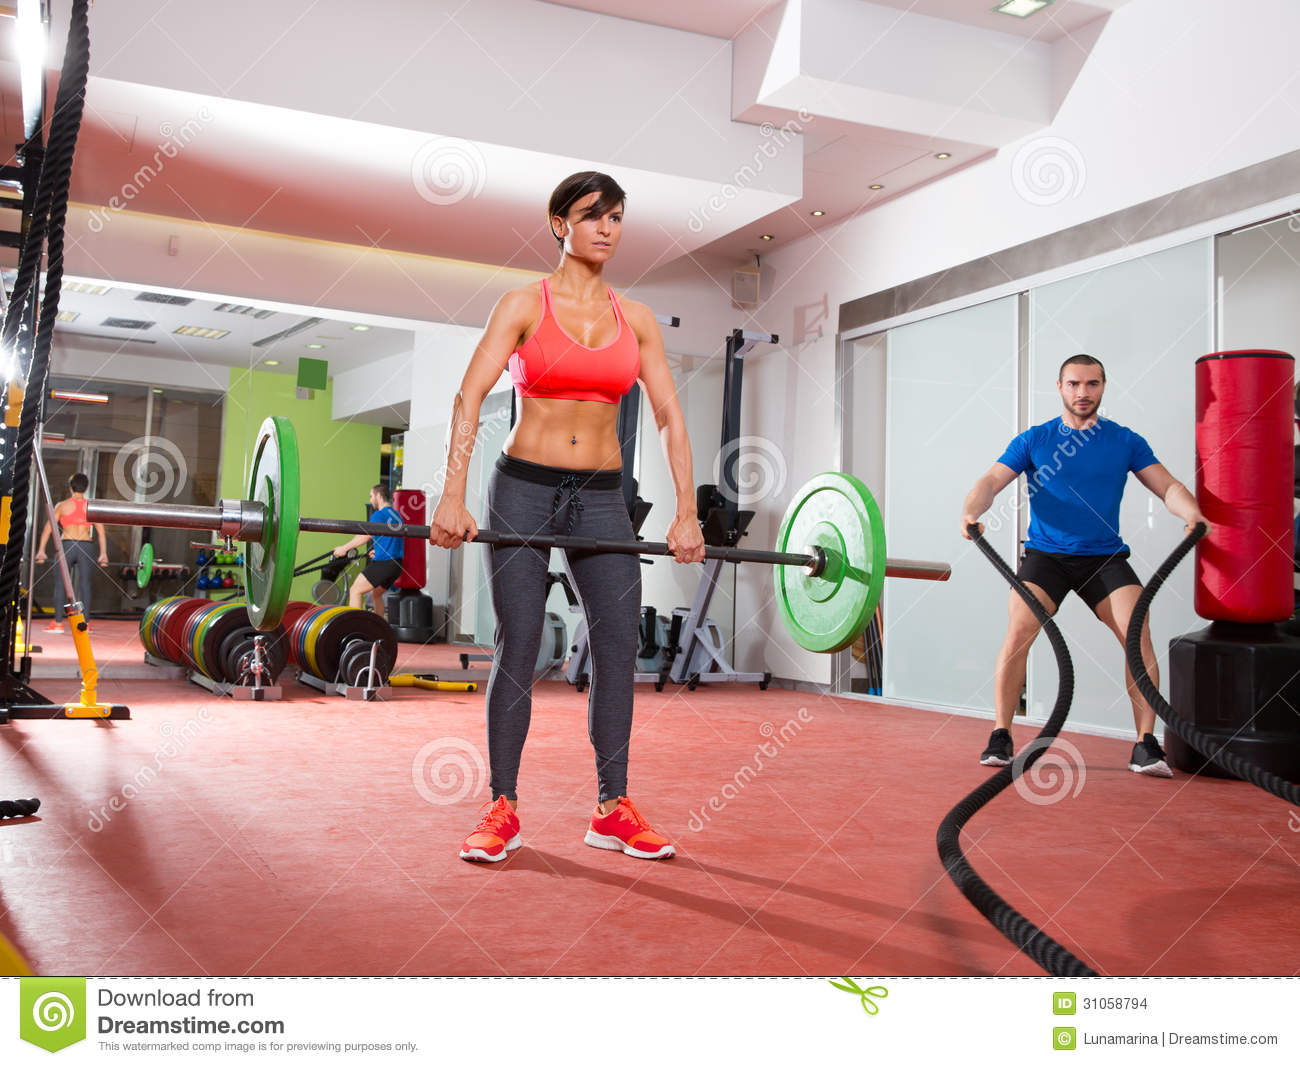 crossfit fitness gym weight lifting bar women and men battling ropes